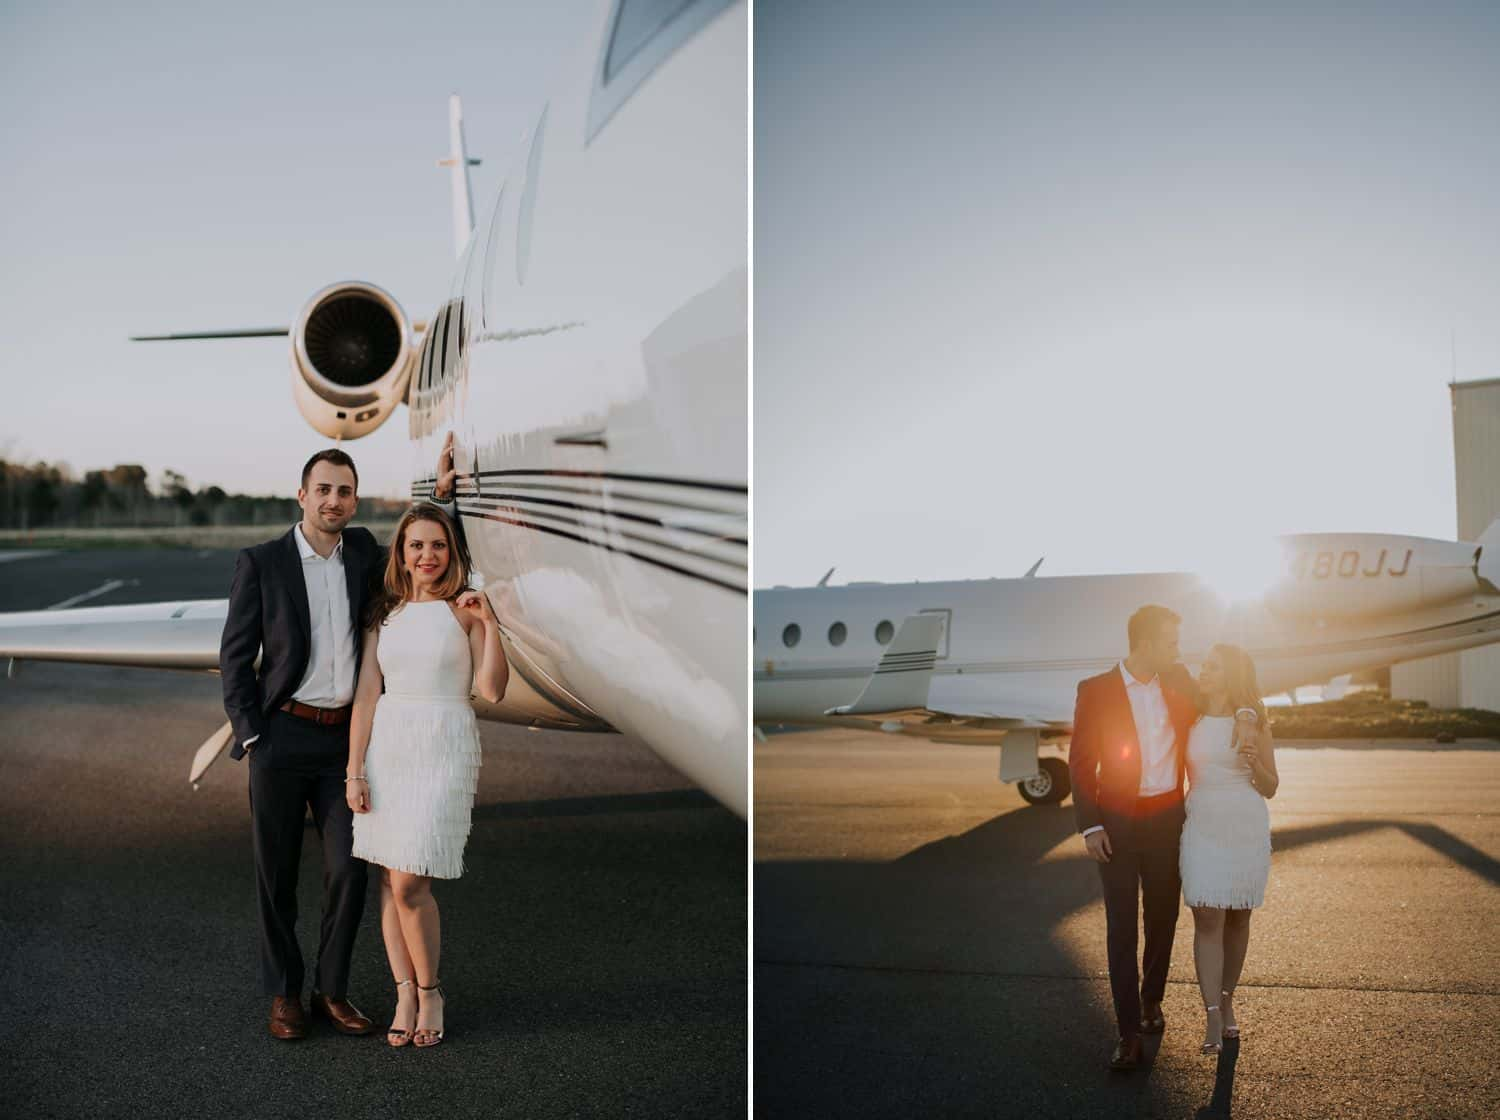 Photos of a couple posing near an airplane